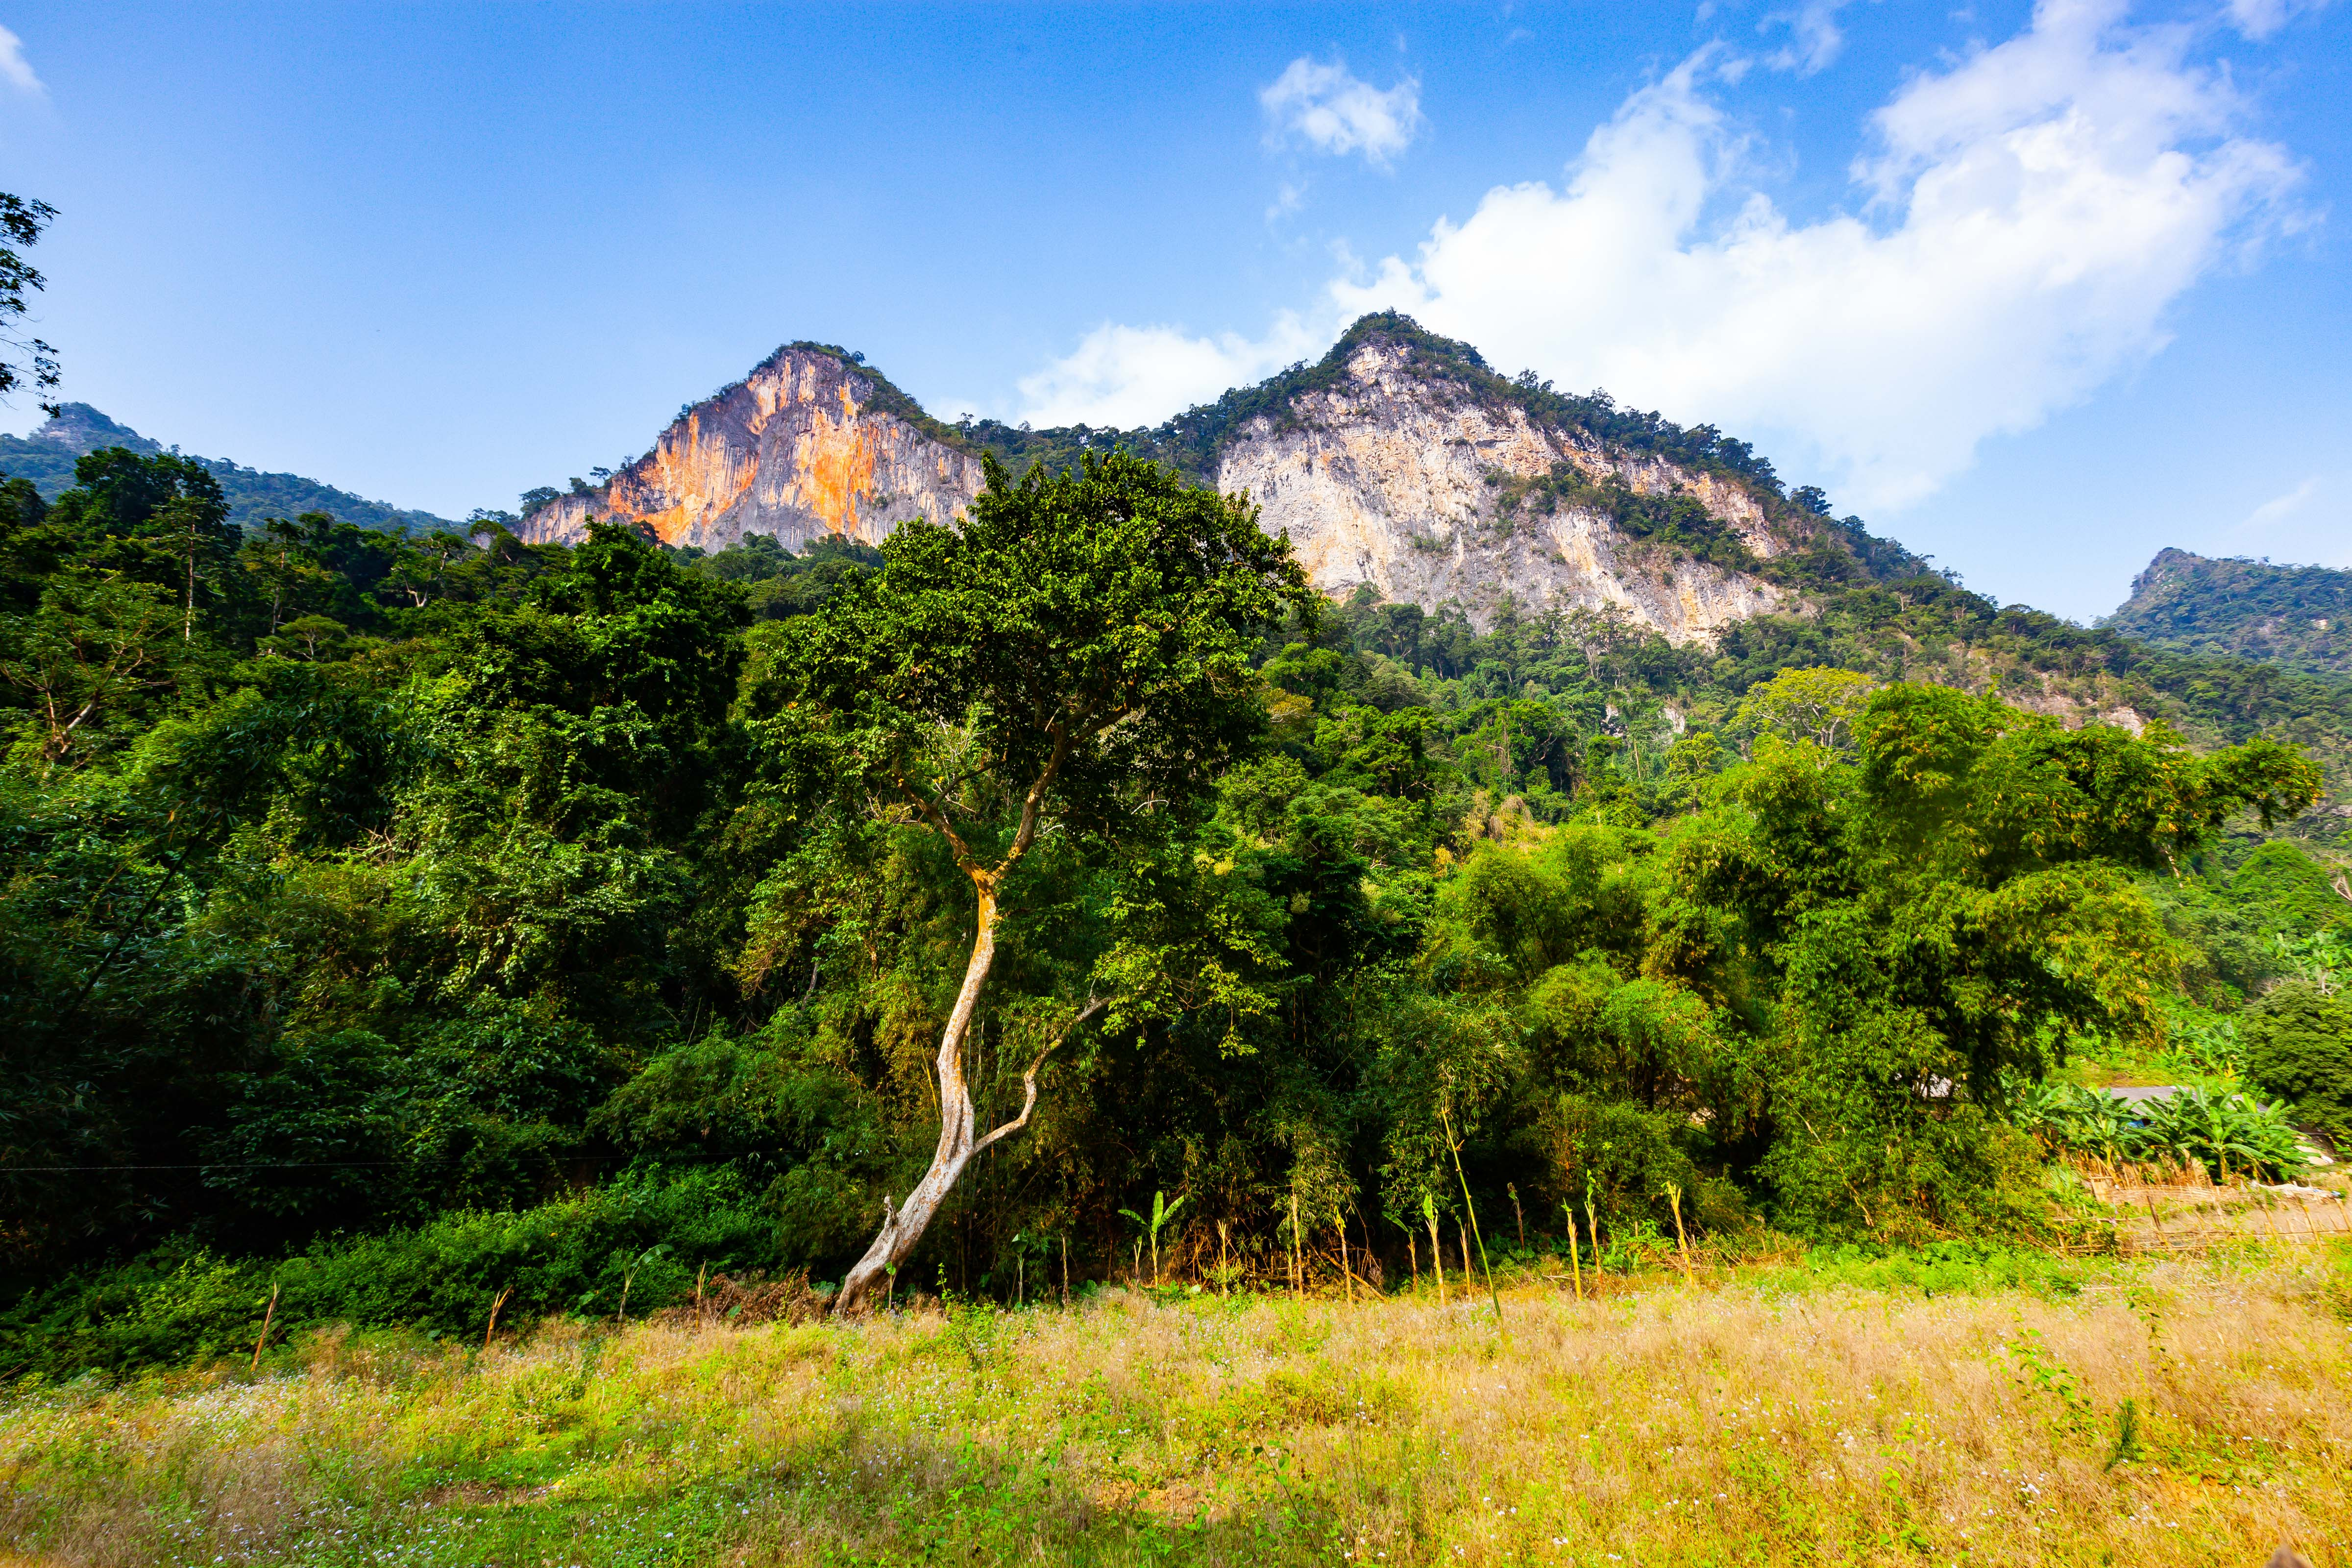 Vietnam, Bac Can Prov, Outcrops, 2011, IMG 0492